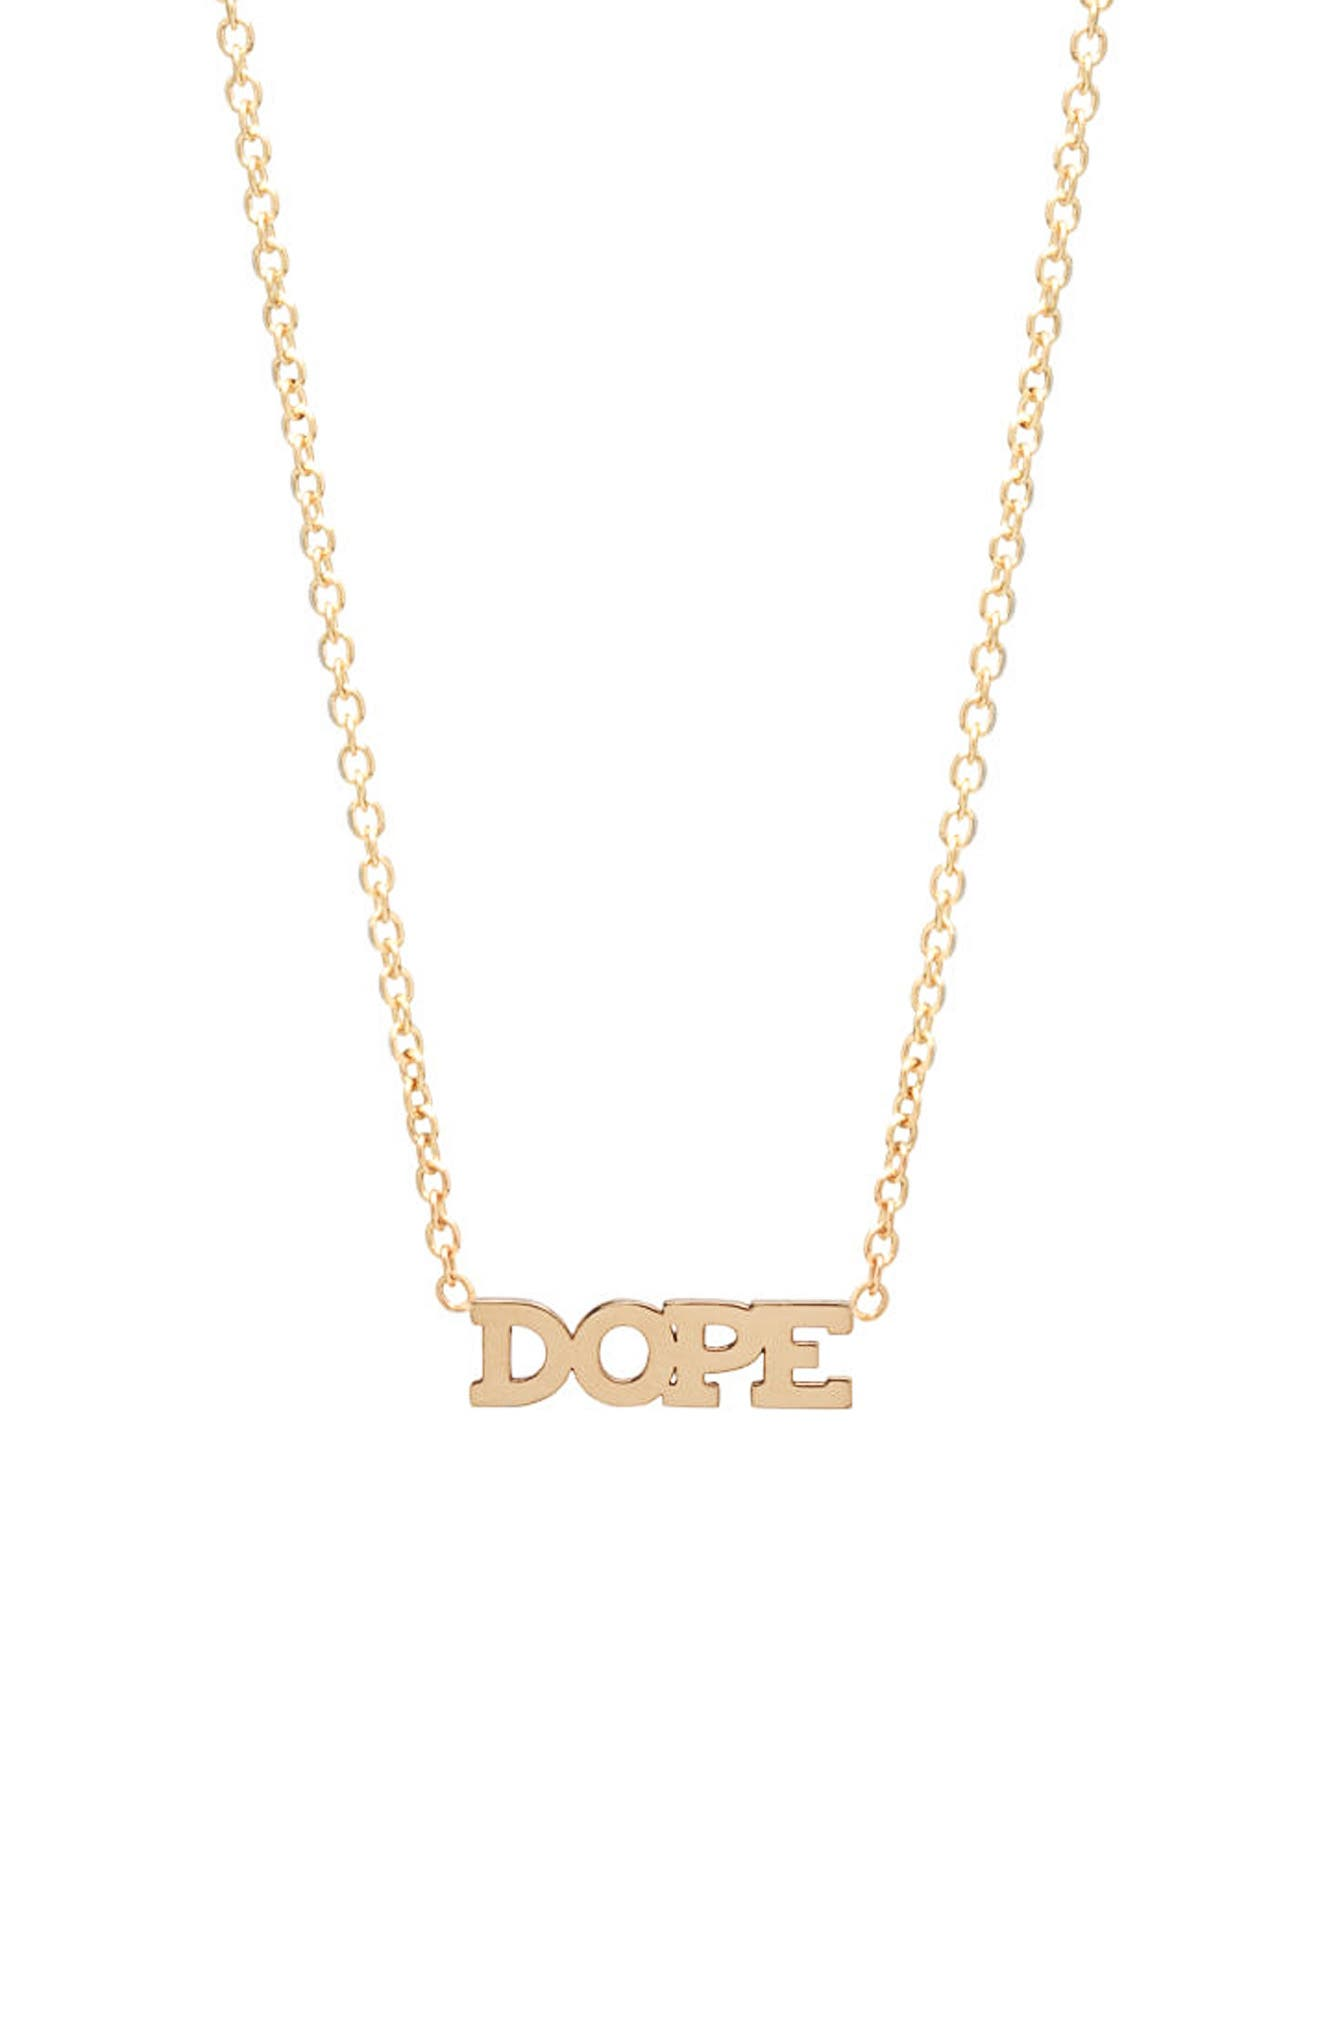 Itty Bitty Dope Pendant Necklace,                             Main thumbnail 1, color,                             710